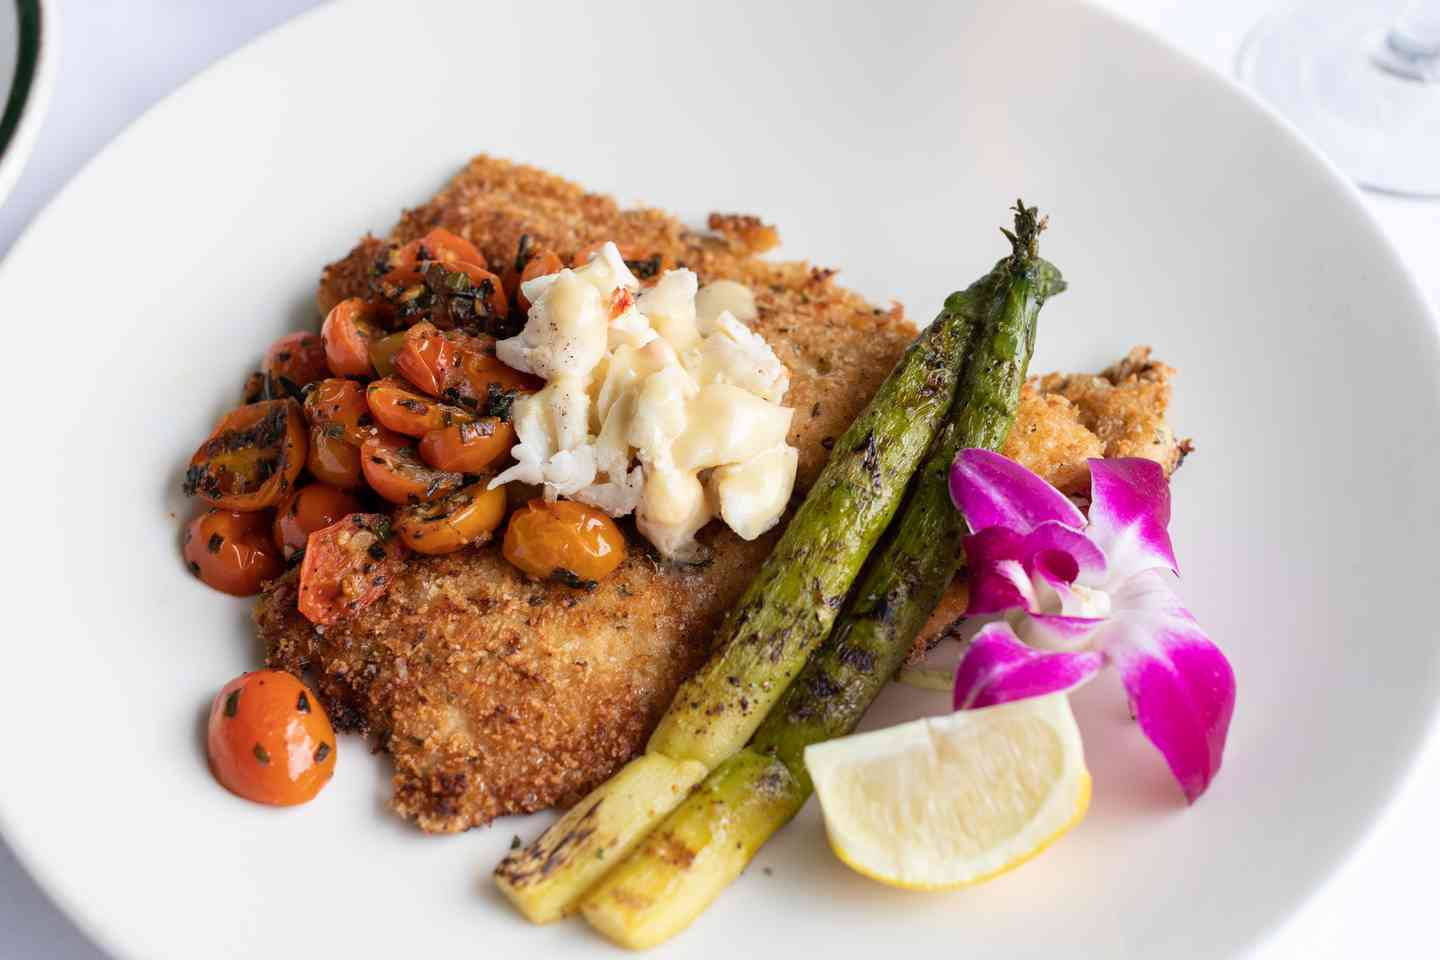 Parmesan Crusted Rainbow Trout With Jumbo Lump Crabmeat